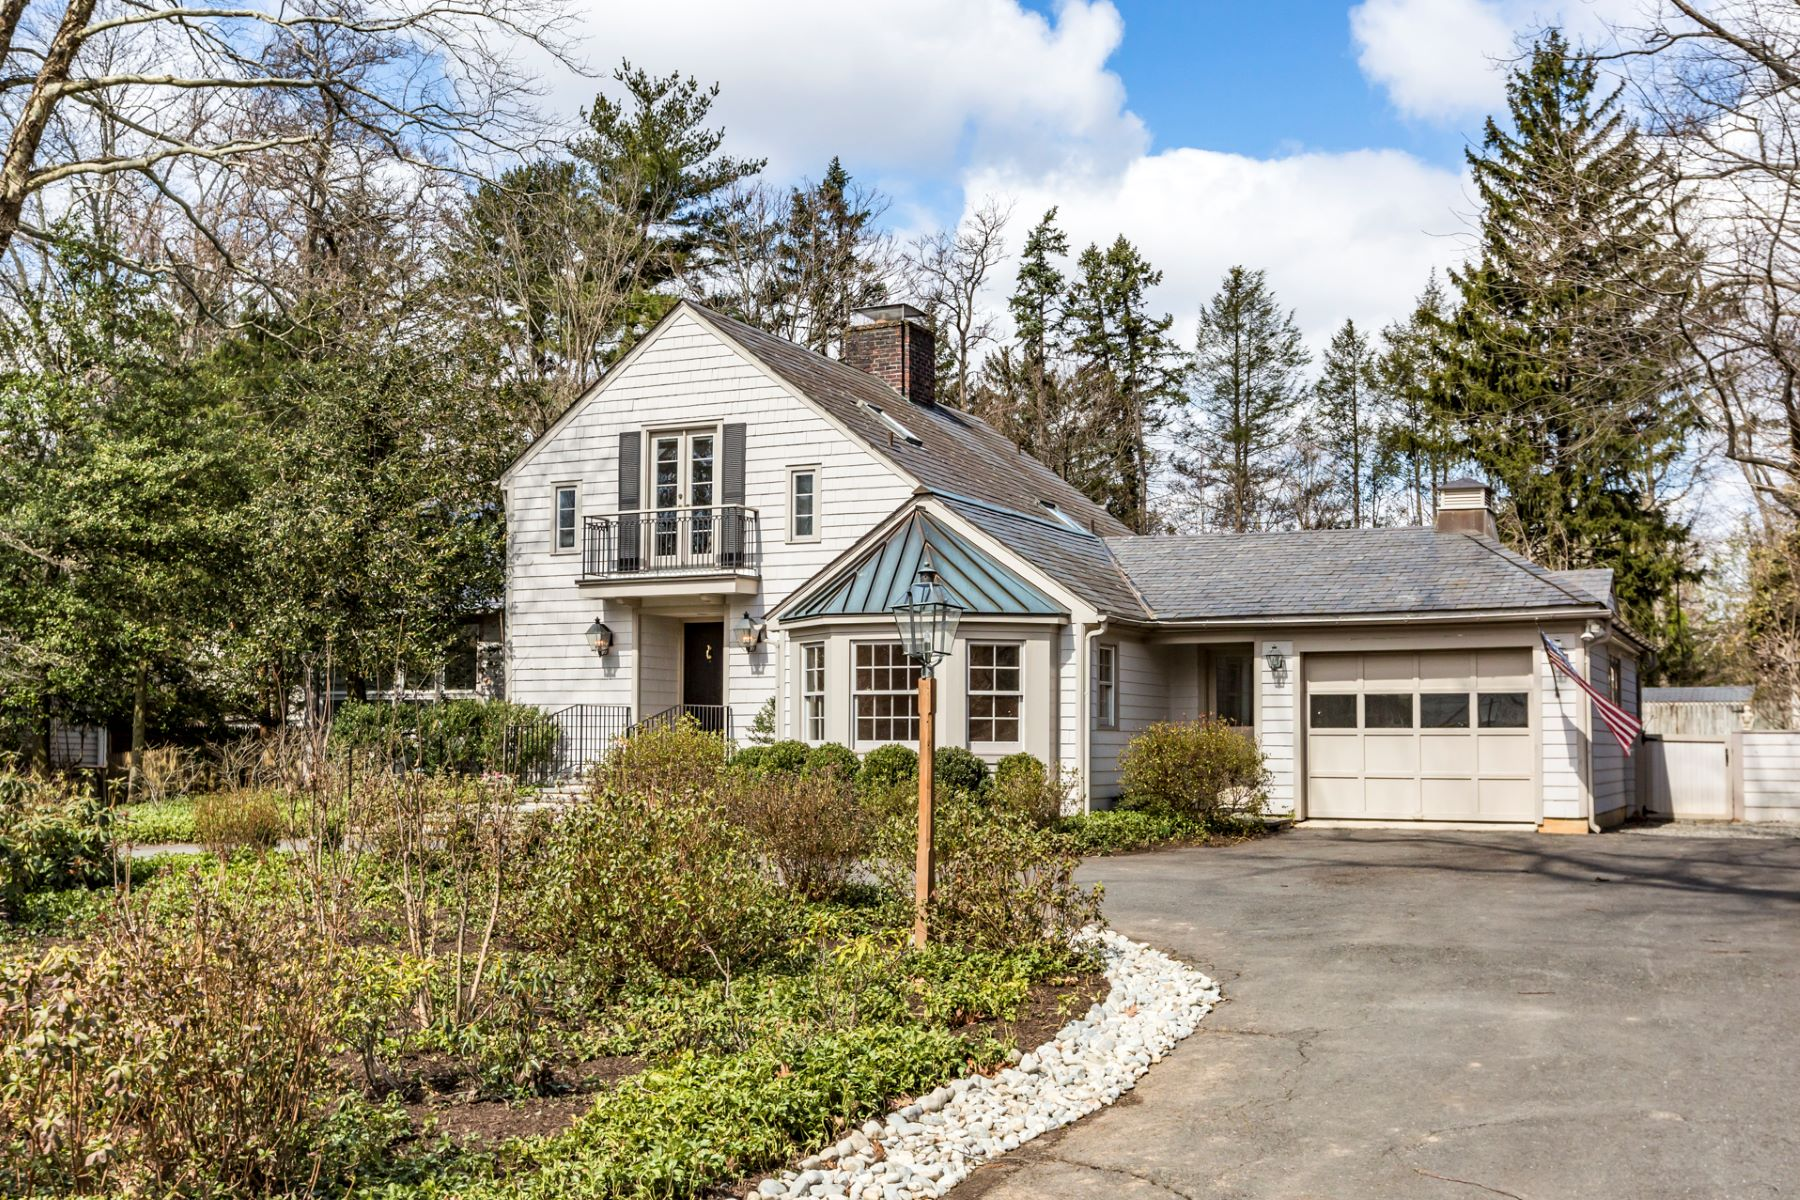 Single Family Home for Sale at Light-Hearted in a Beloved Western Section Enclave 7 Armour Road, Princeton, New Jersey 08540 United StatesMunicipality: Princeton, Princeton